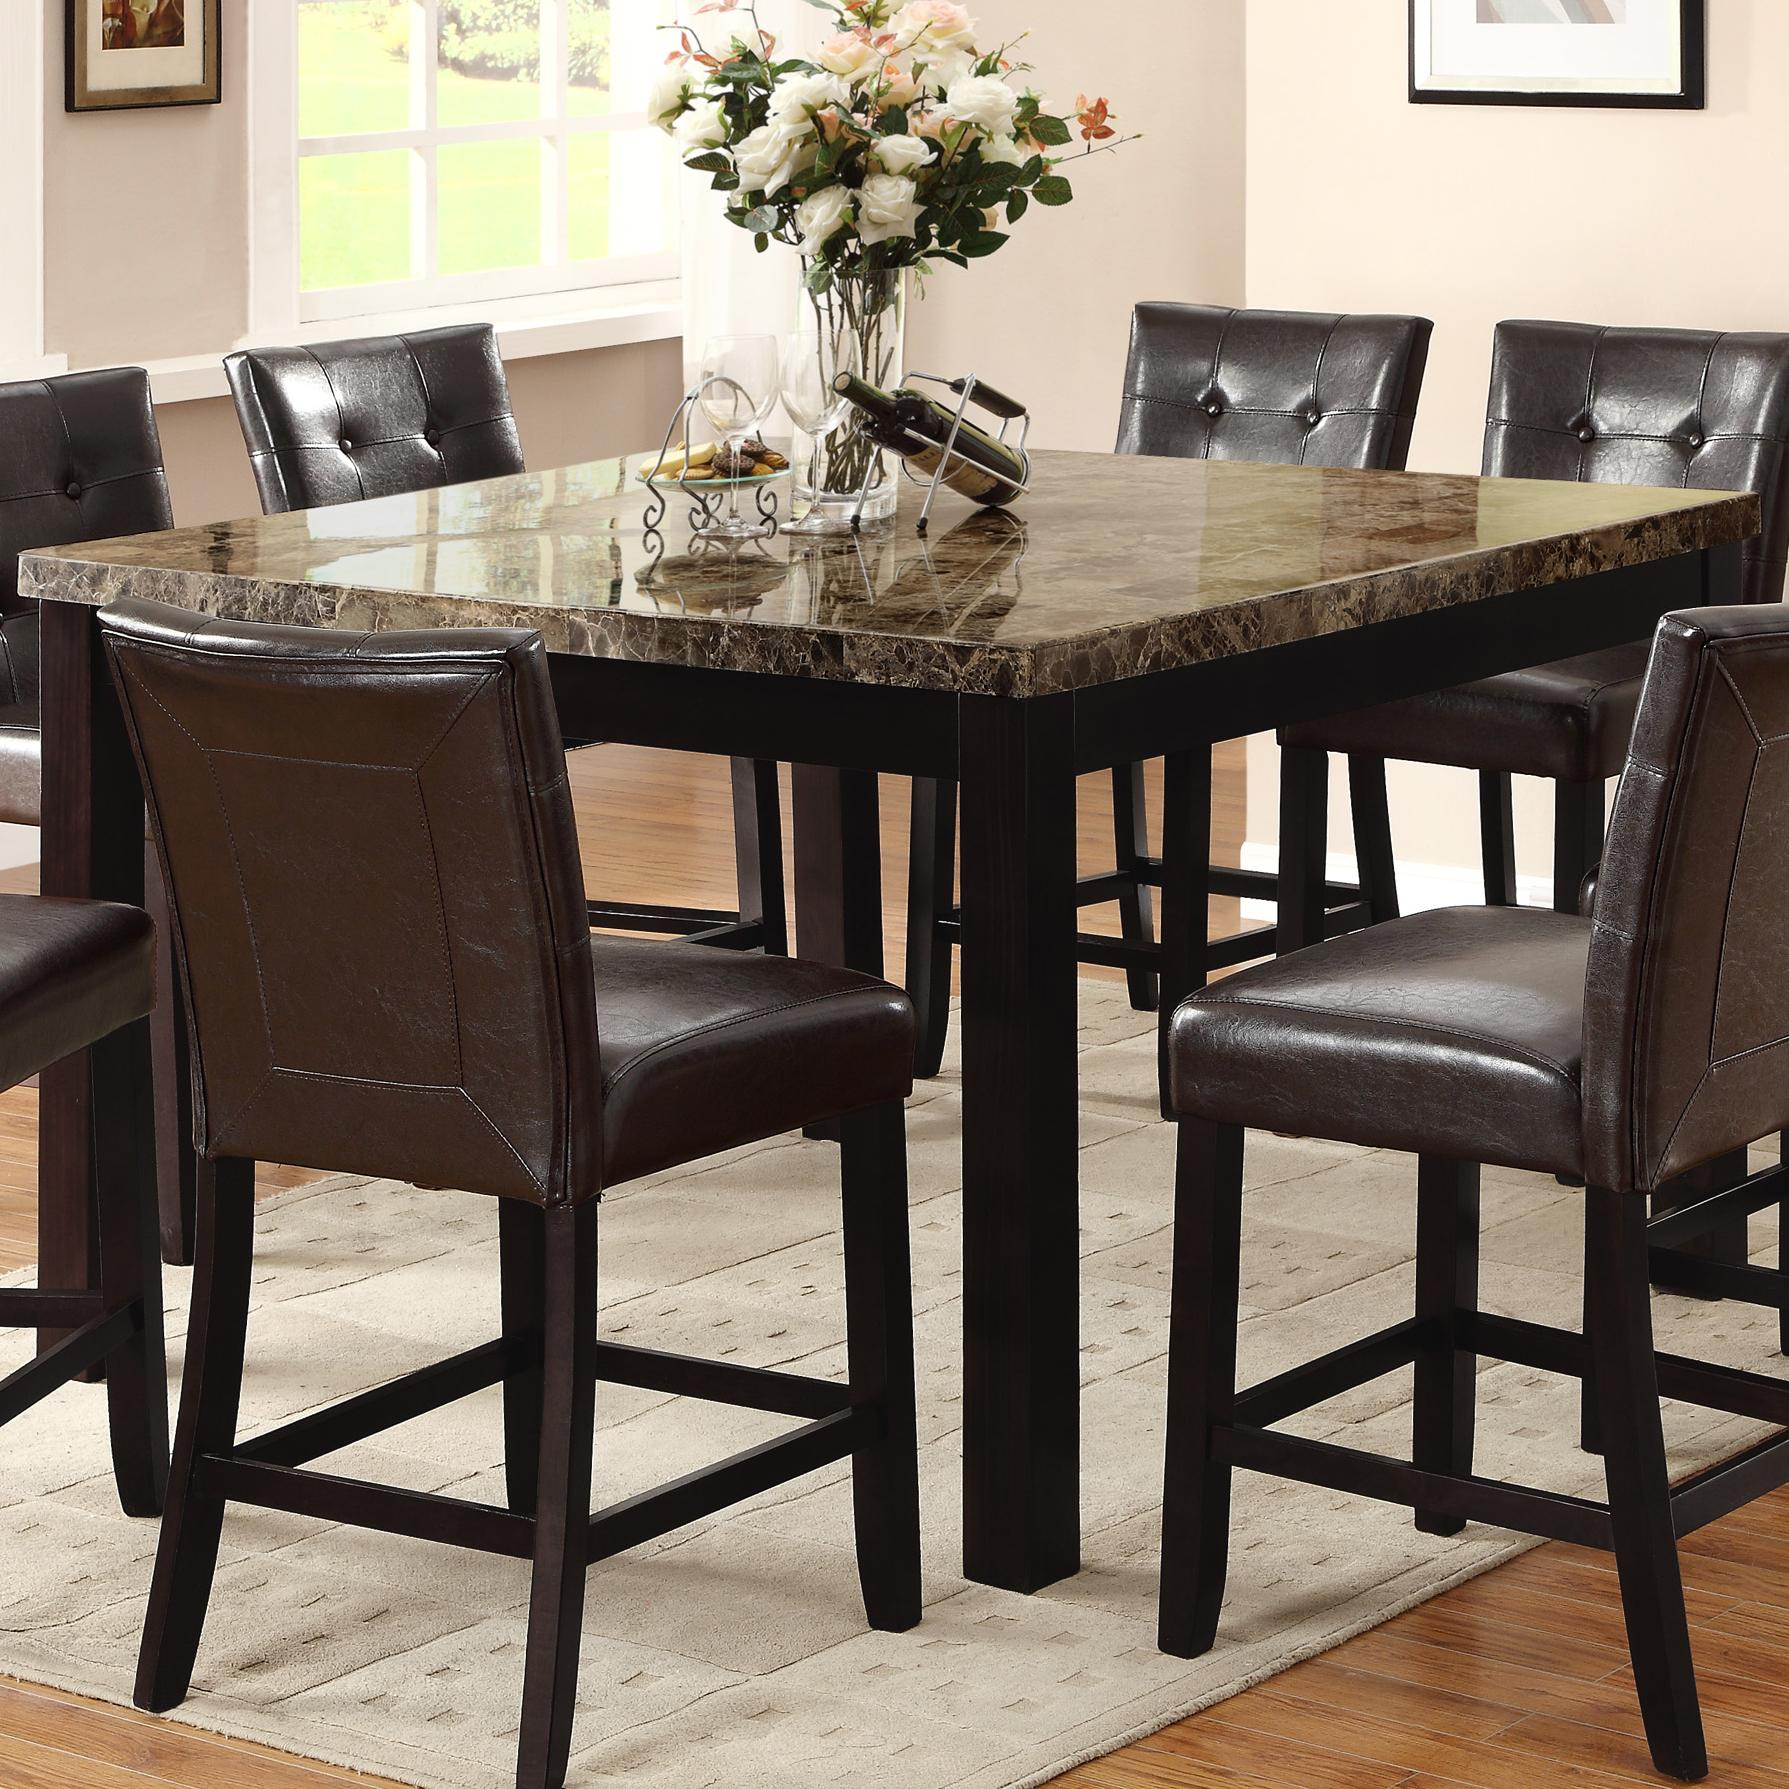 crown mark bruce 2767t 5454 square counter height table. Black Bedroom Furniture Sets. Home Design Ideas